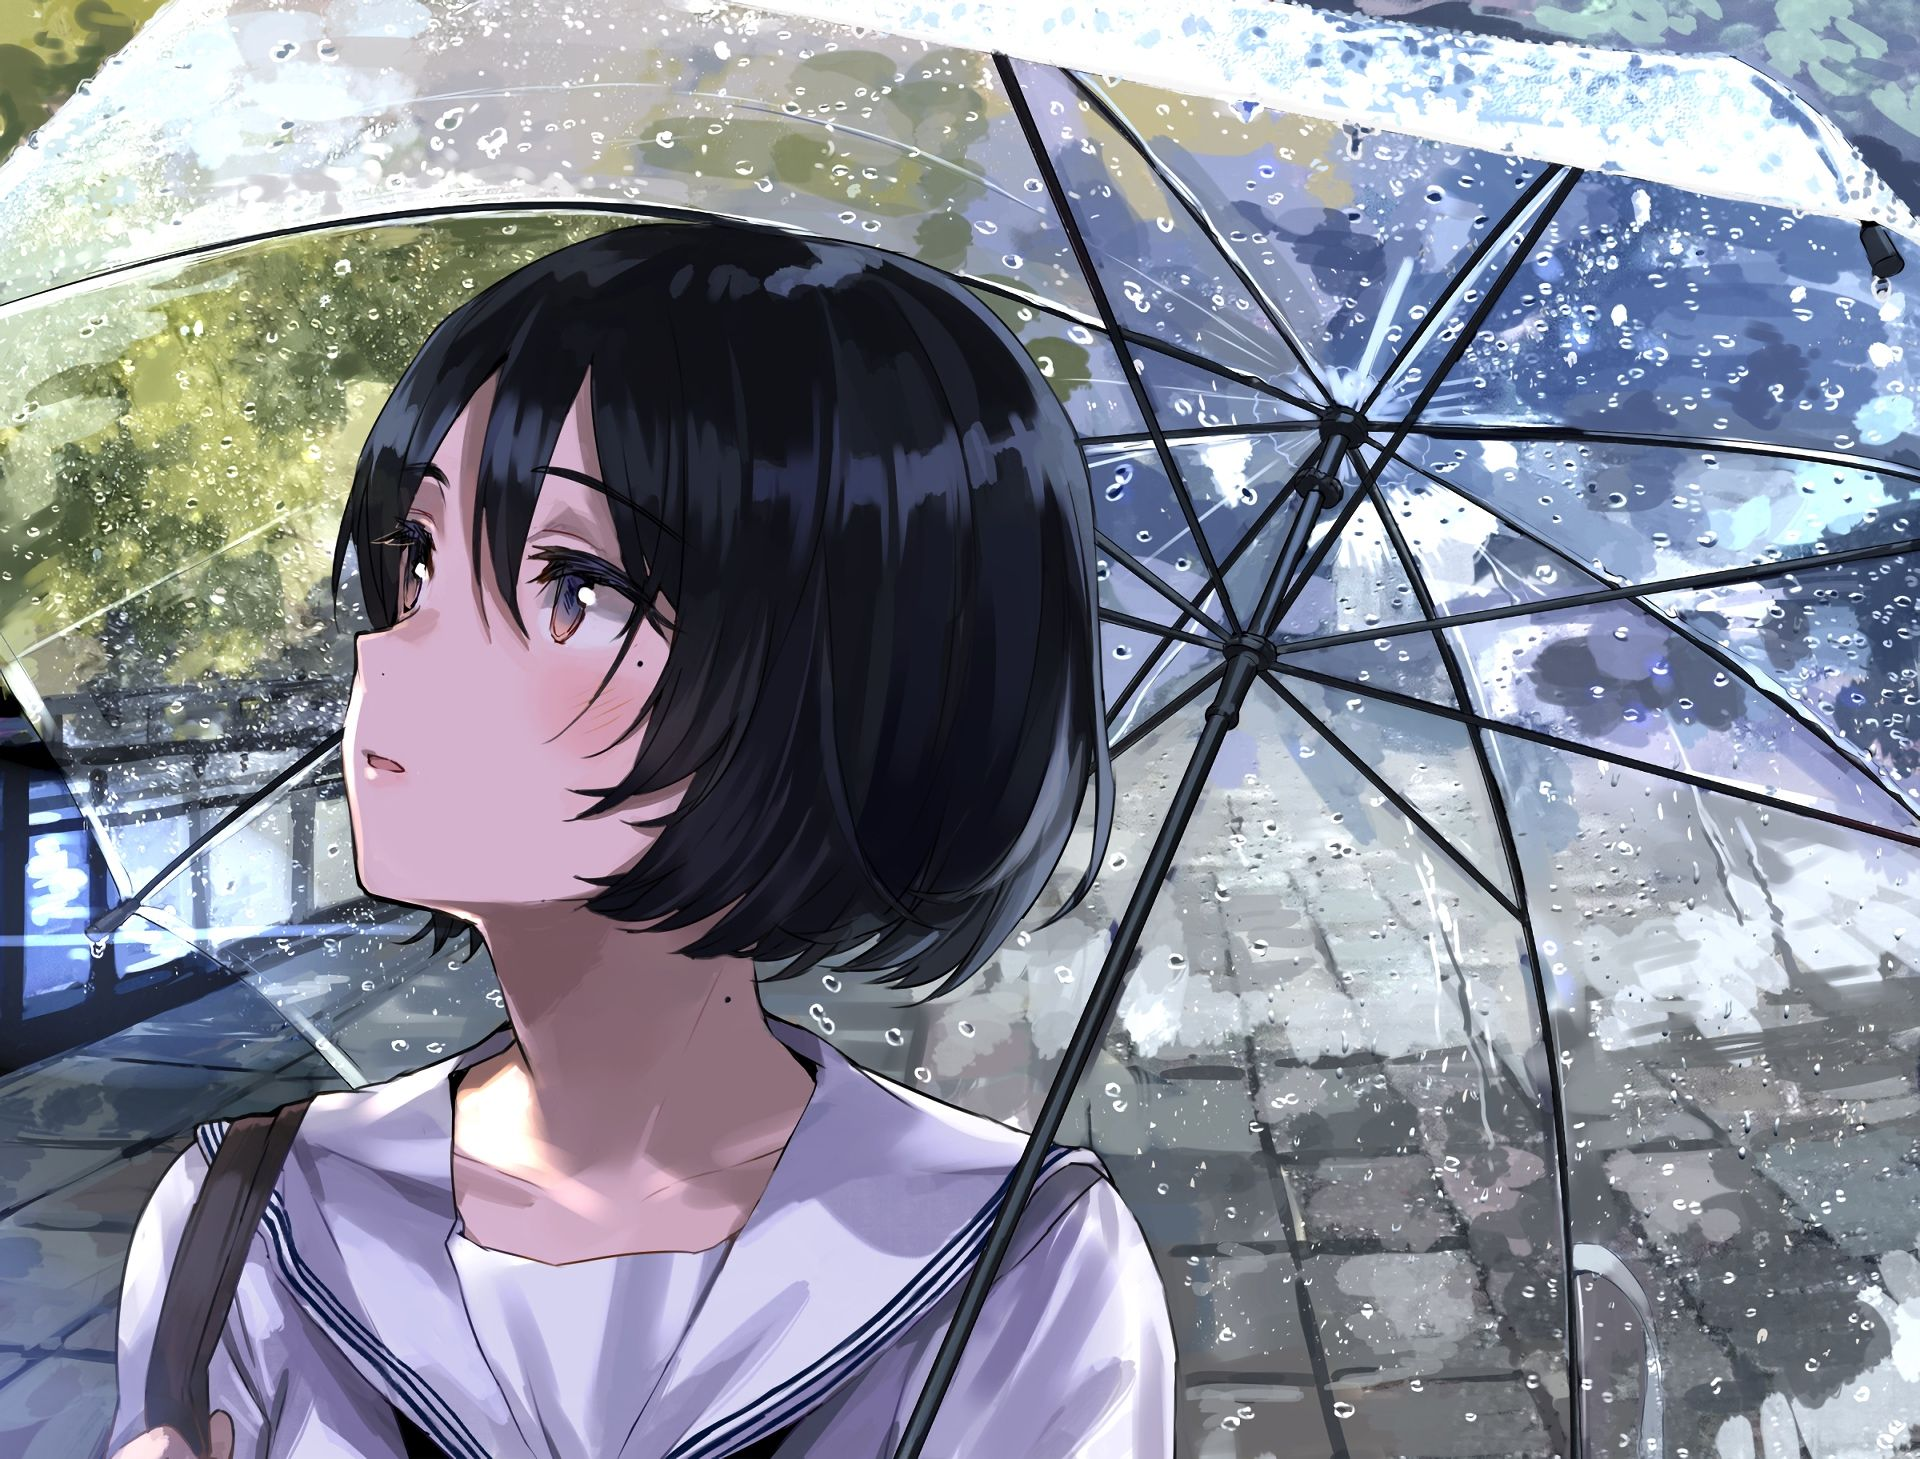 umbrella anime girl cute rain original Anime Wallpaper